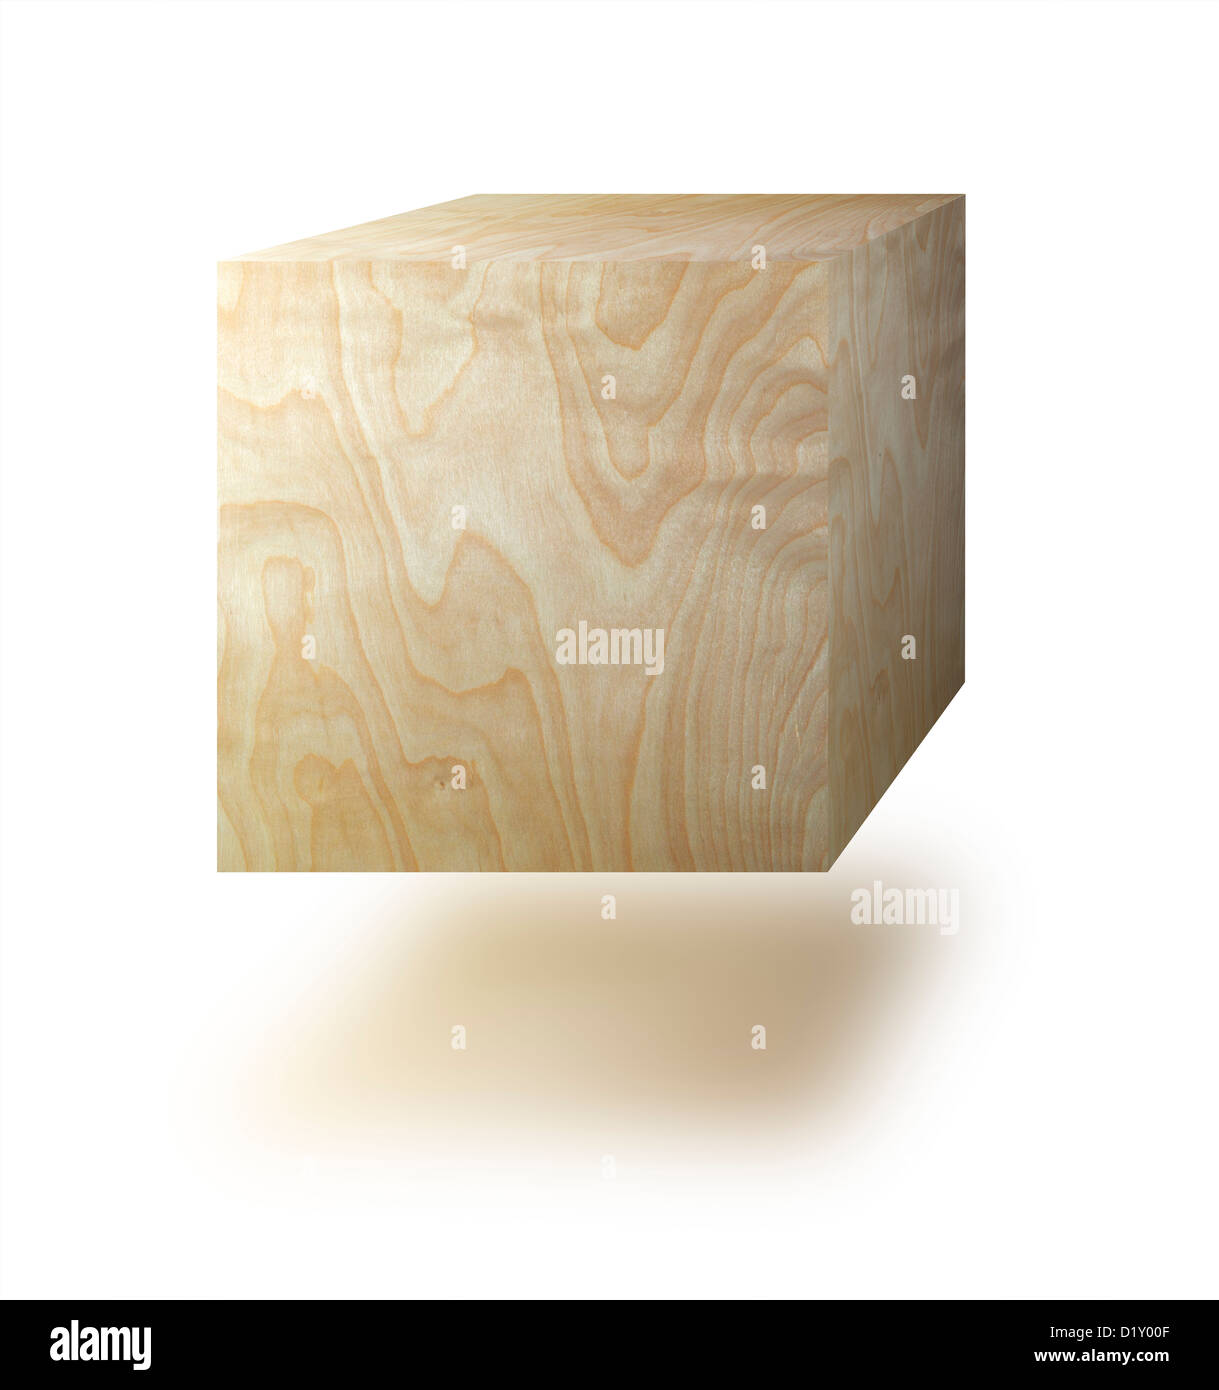 Cube made from wood against a white background - Stock Image